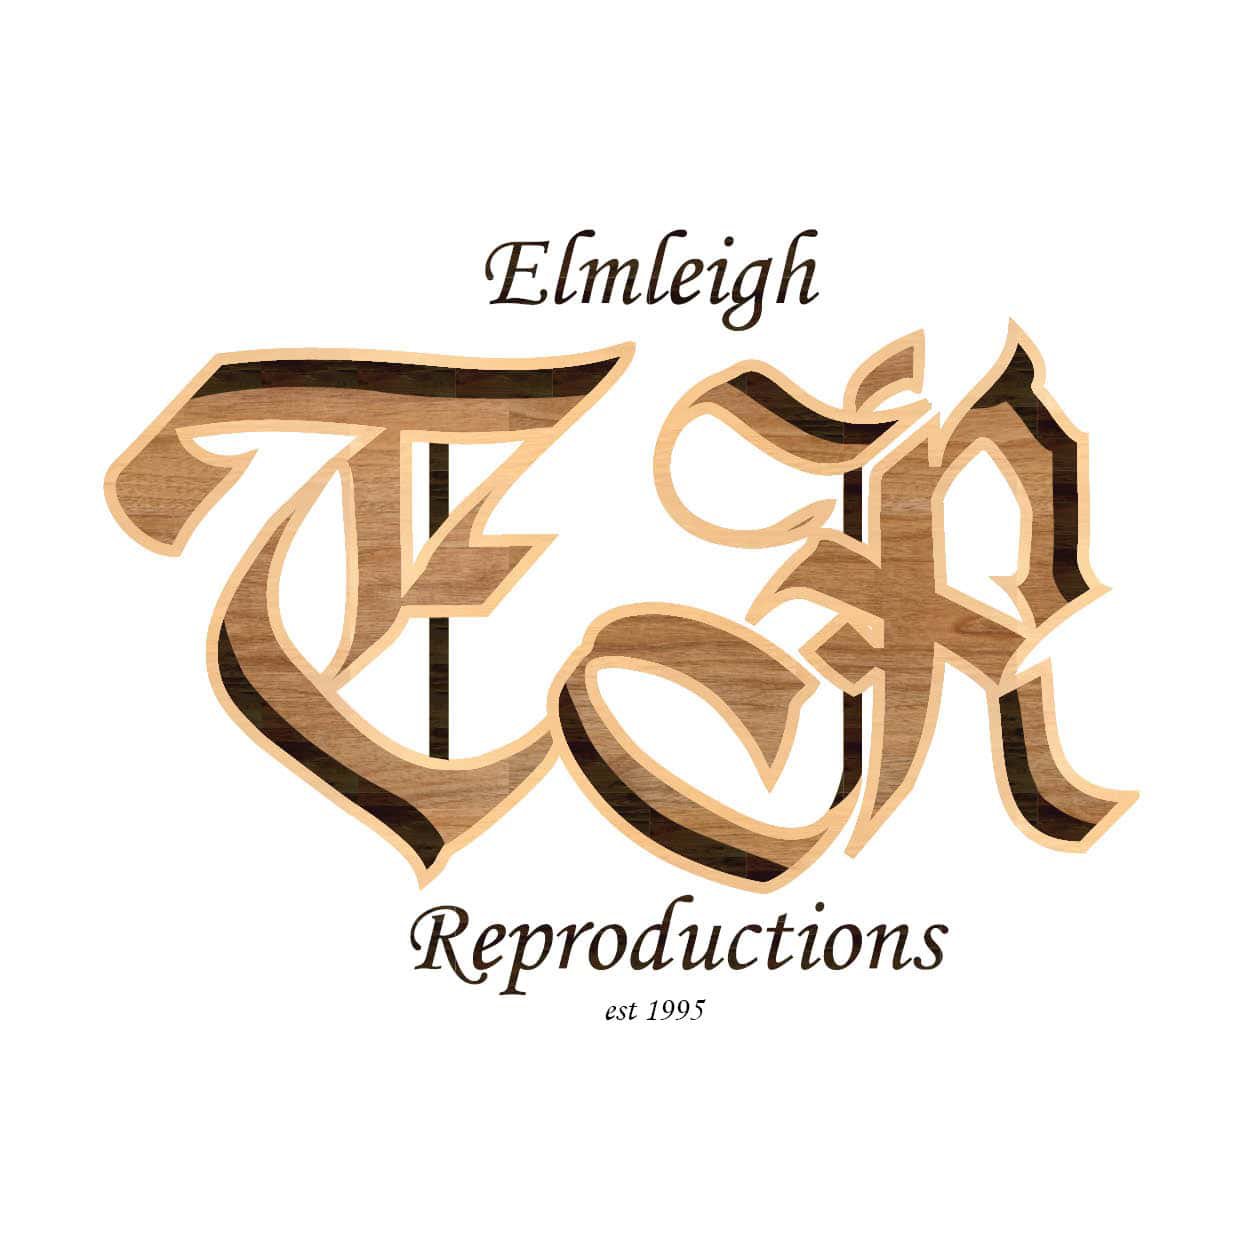 Elmleigh Reproductions